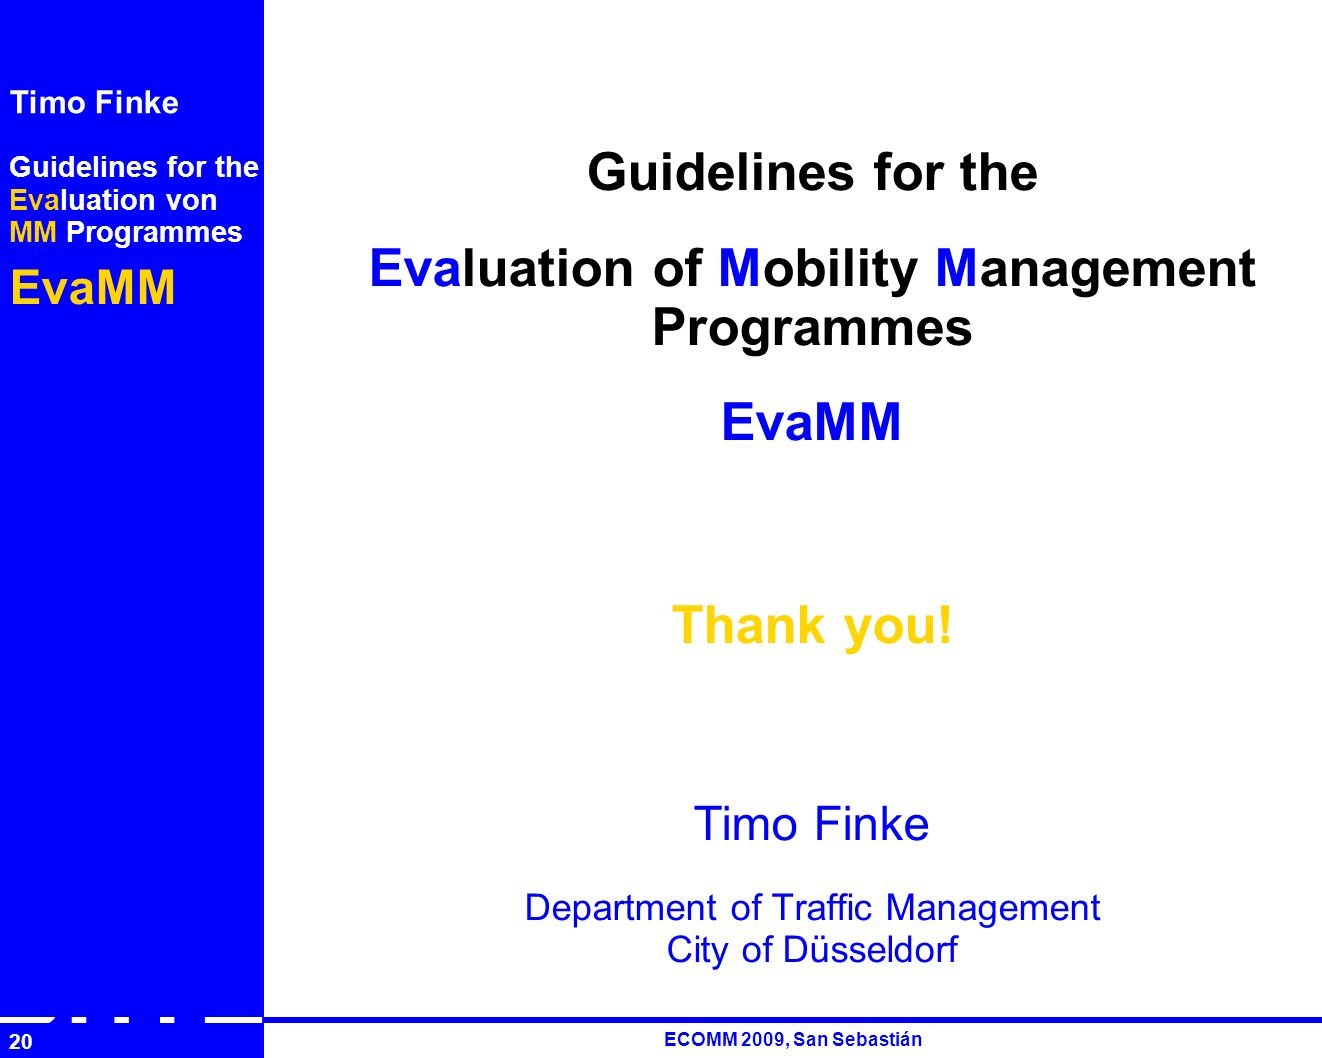 Guidelines for the Evaluation von MM Programmes EvaMM Timo Finke RUTH ECOMM 2009, San Sebastián 20 Guidelines for the Evaluation of Mobility Management Programmes EvaMM Thank you.